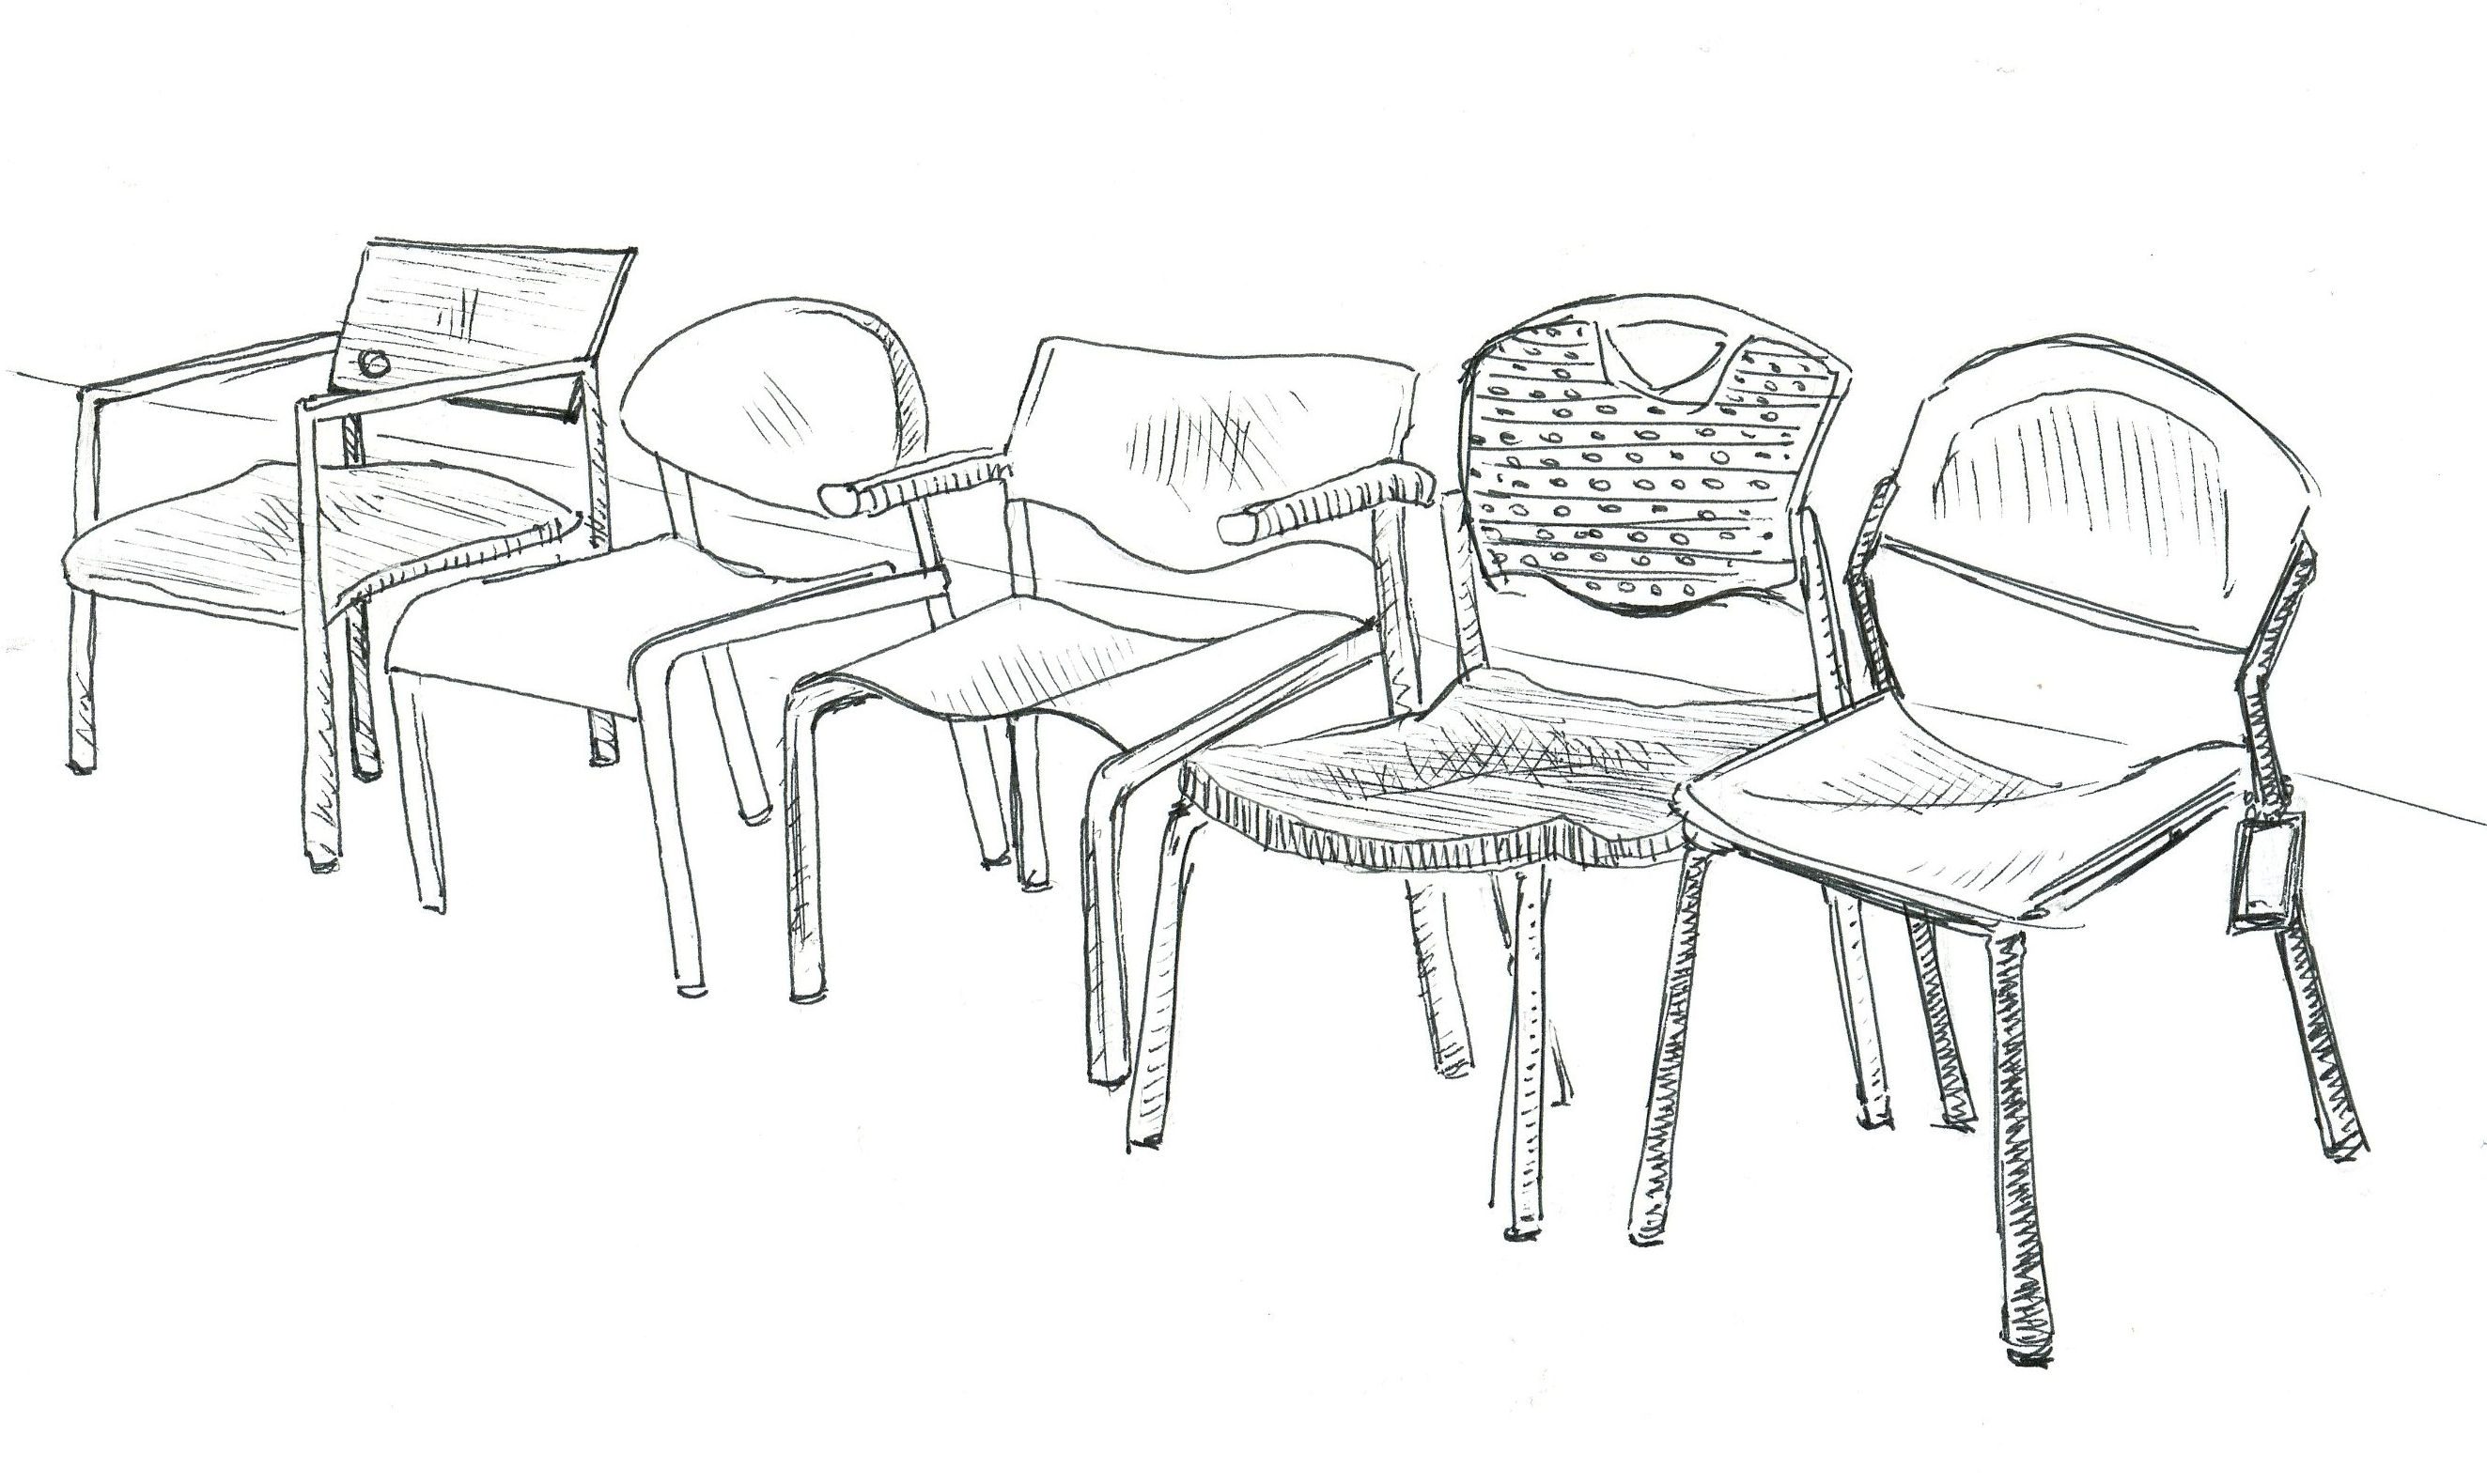 Barber chairs drawing - How To Draw Barber Chairbarber Chair Drawing